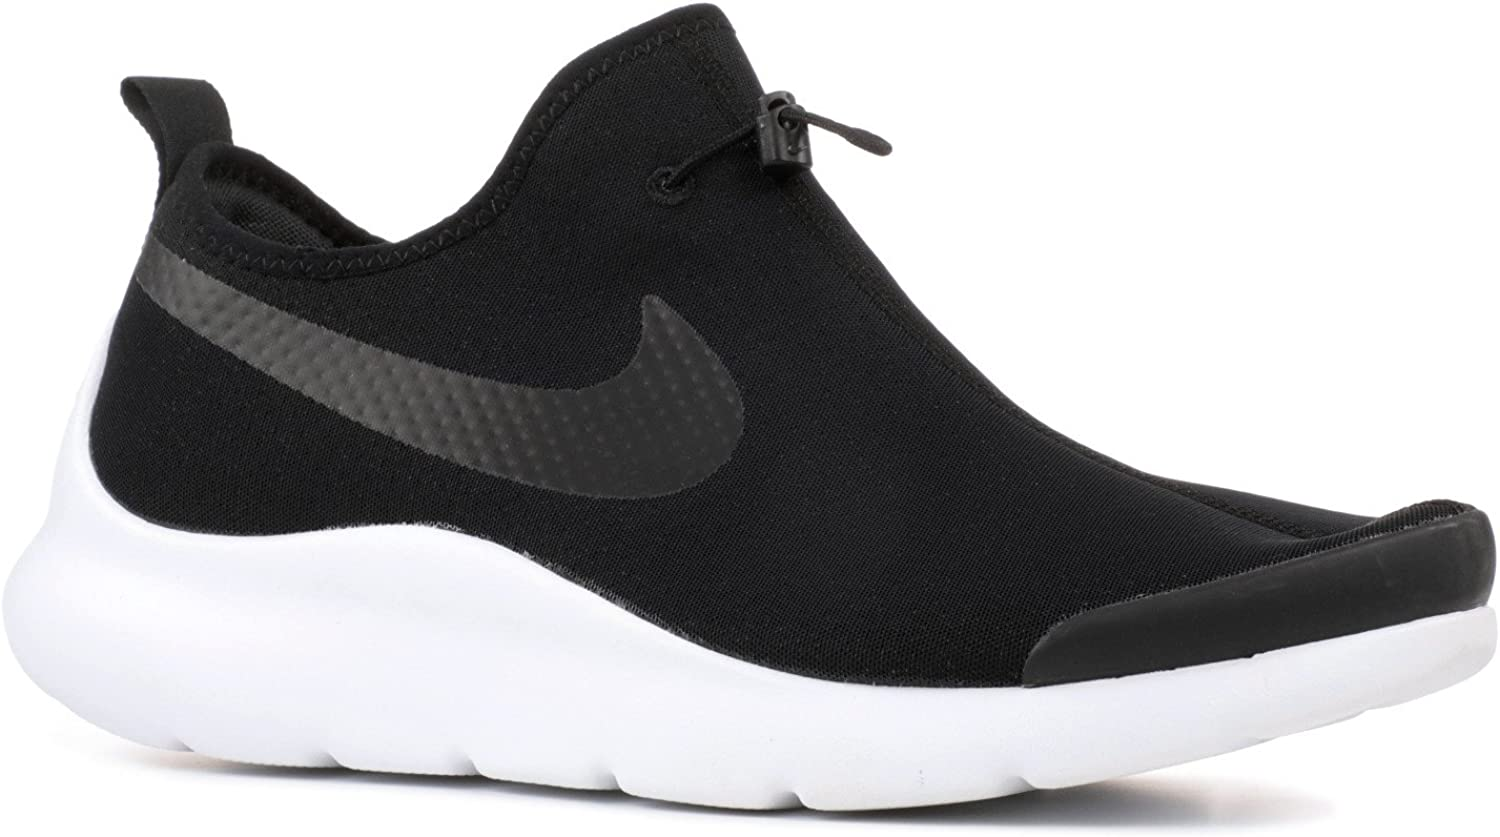 Nike Men's Aptare SE Running shoes Black, Black-White